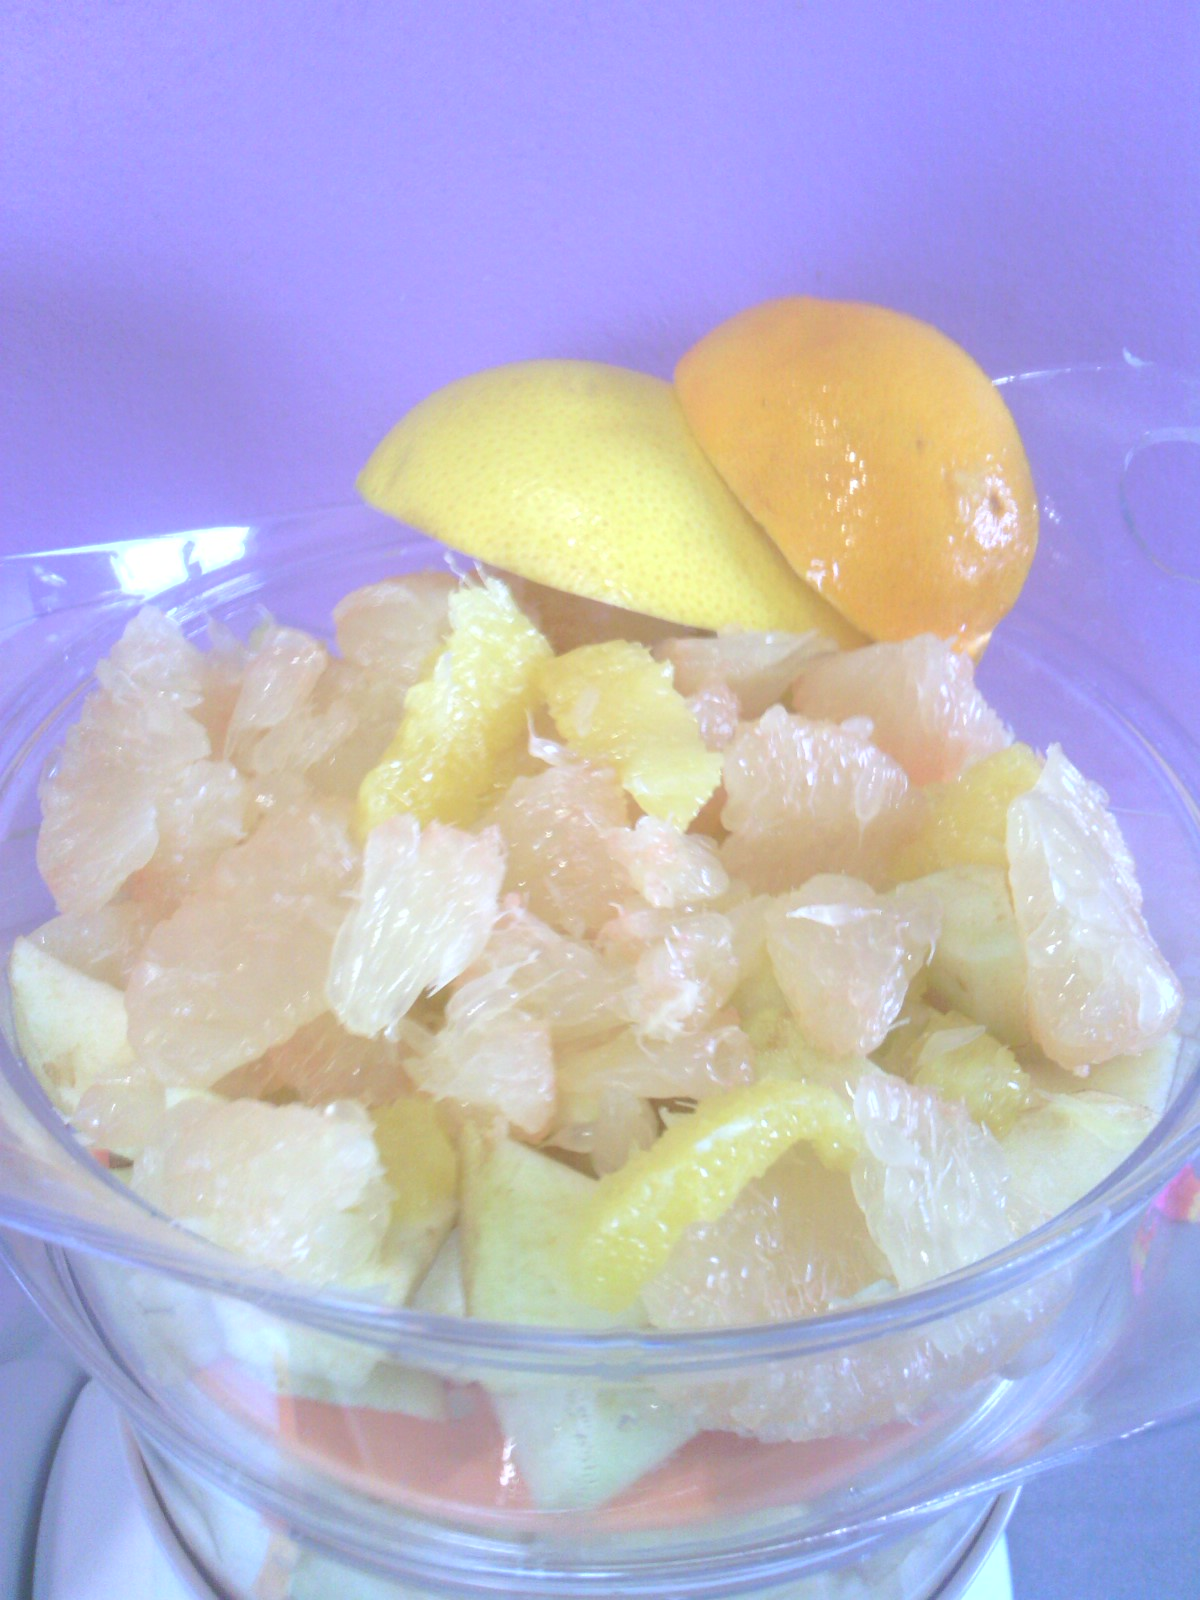 pomme agrumes cuisson 2